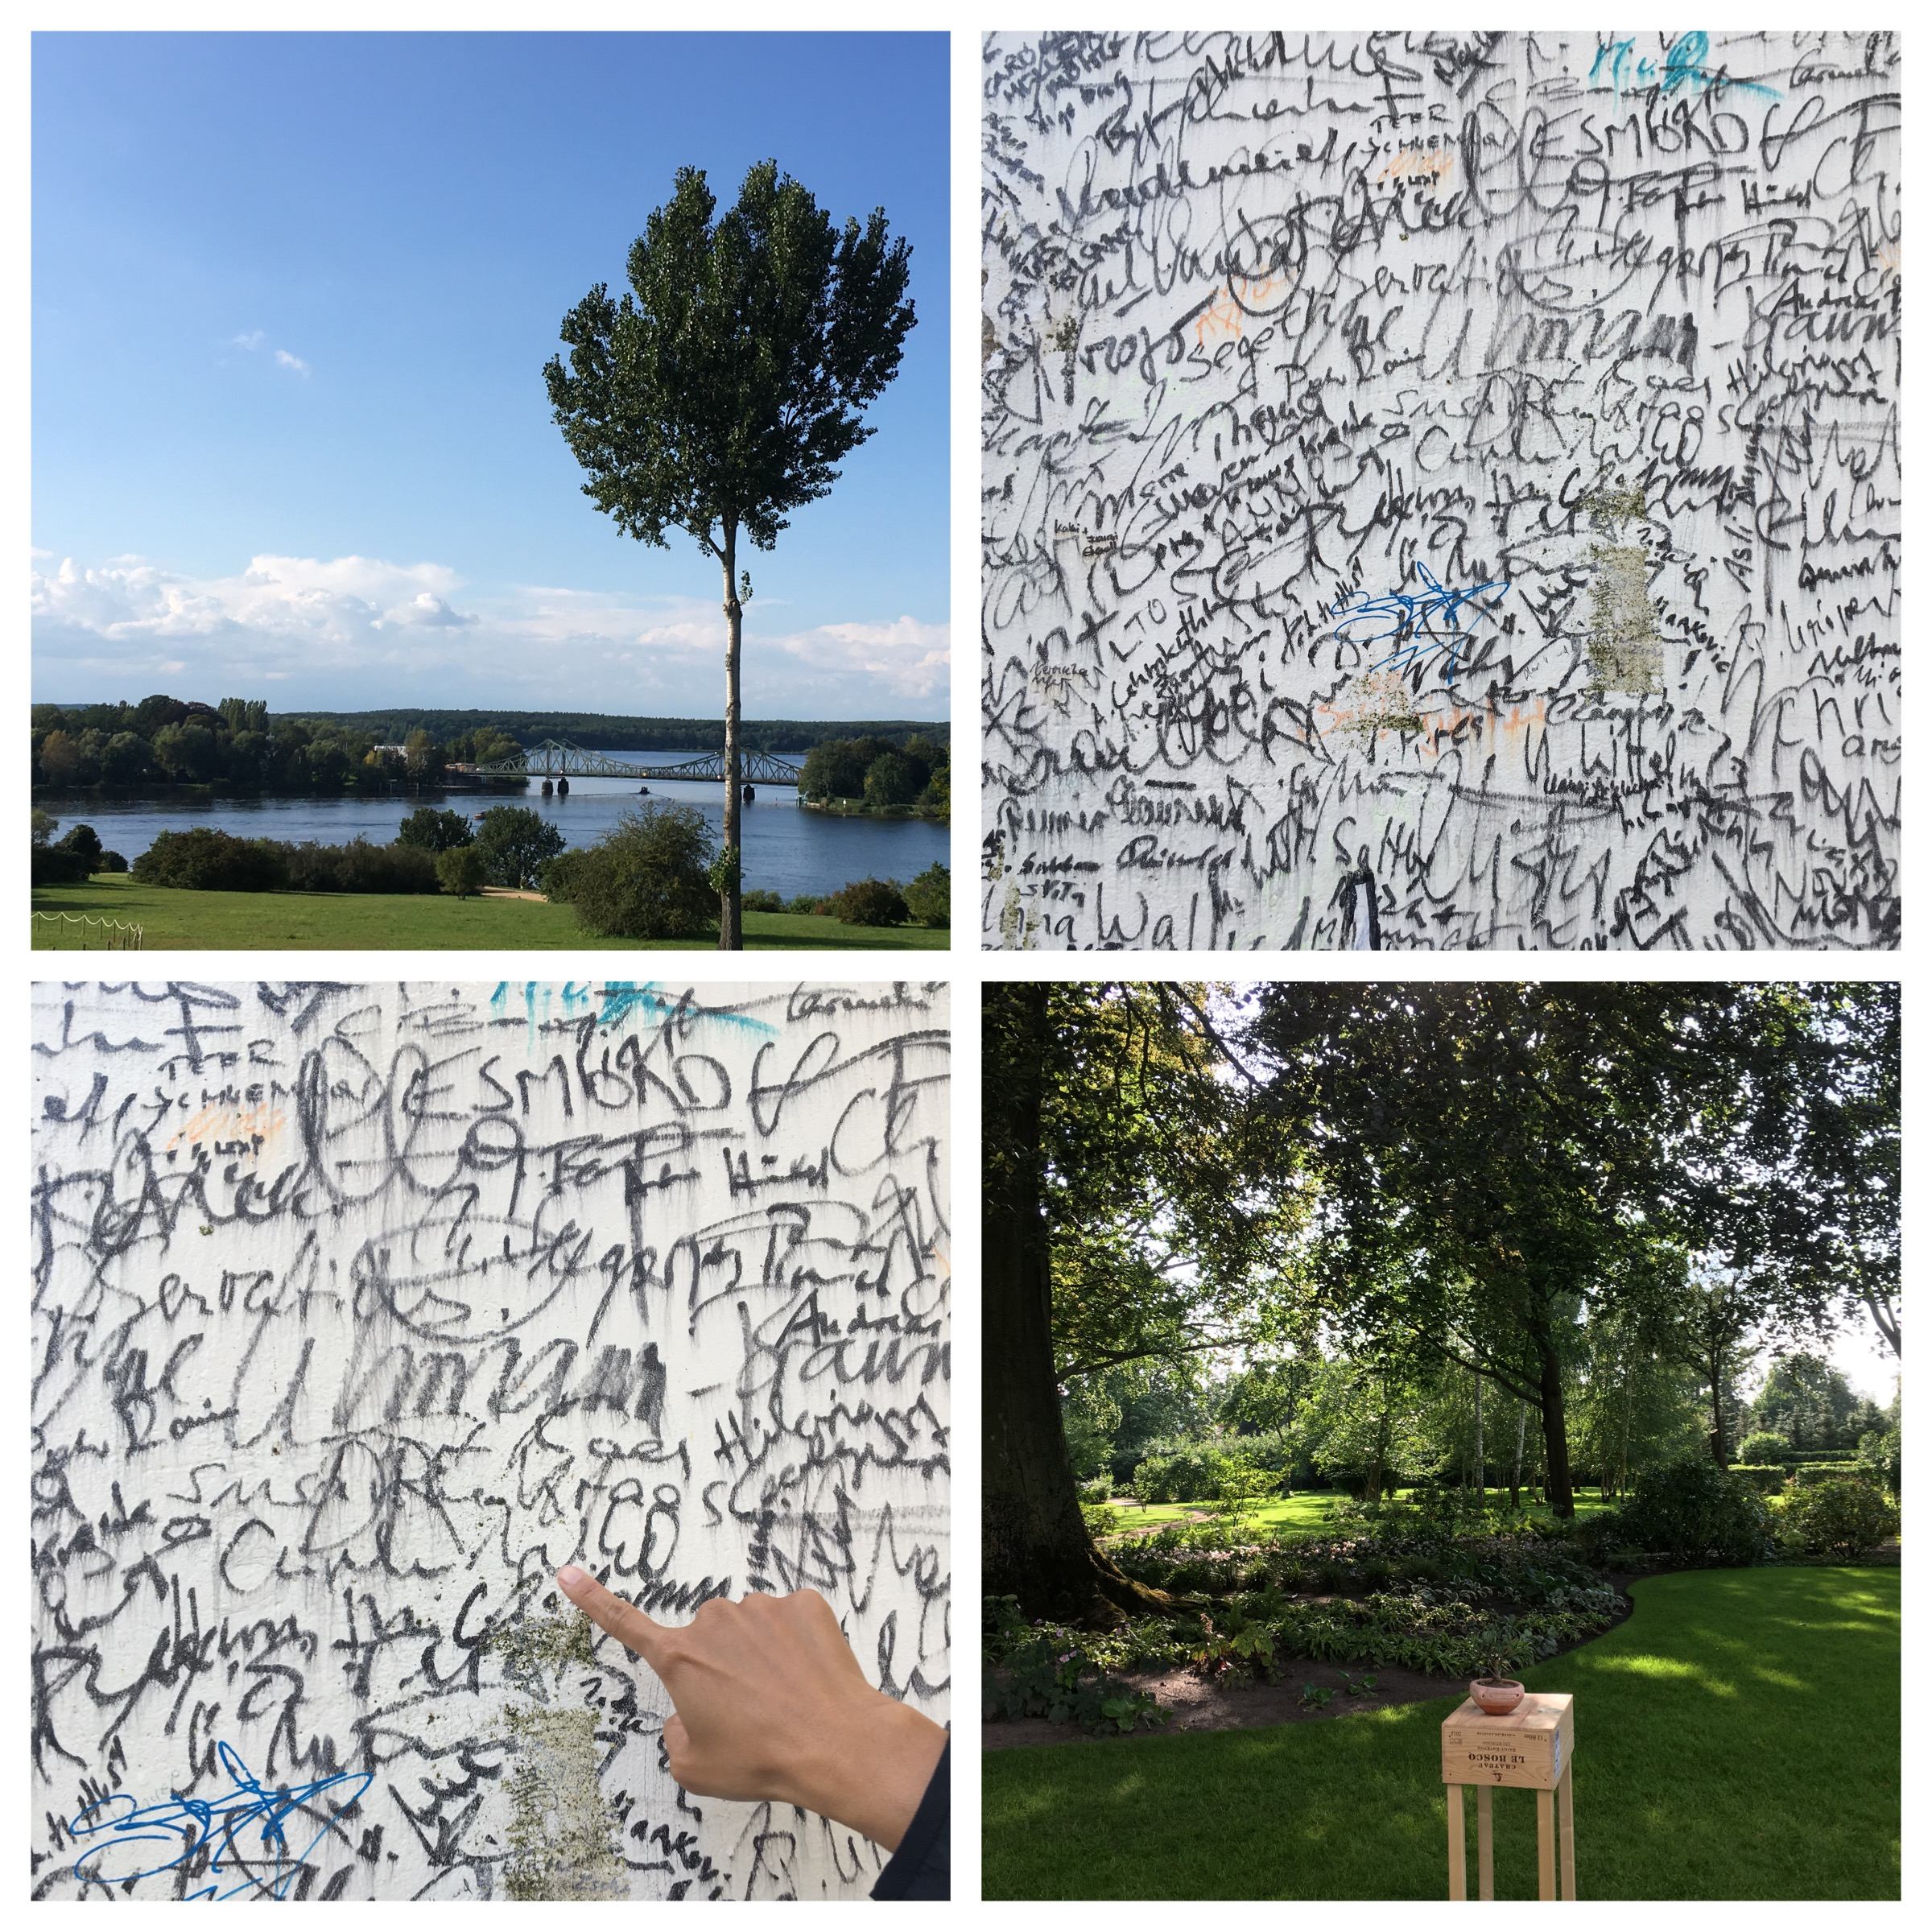 Top left and clockwise: The Glienicke Bridge in the distance, part of the Wall that ran past the villa - can you spot Merkel's signature?, the villa's garden, there's Angela!